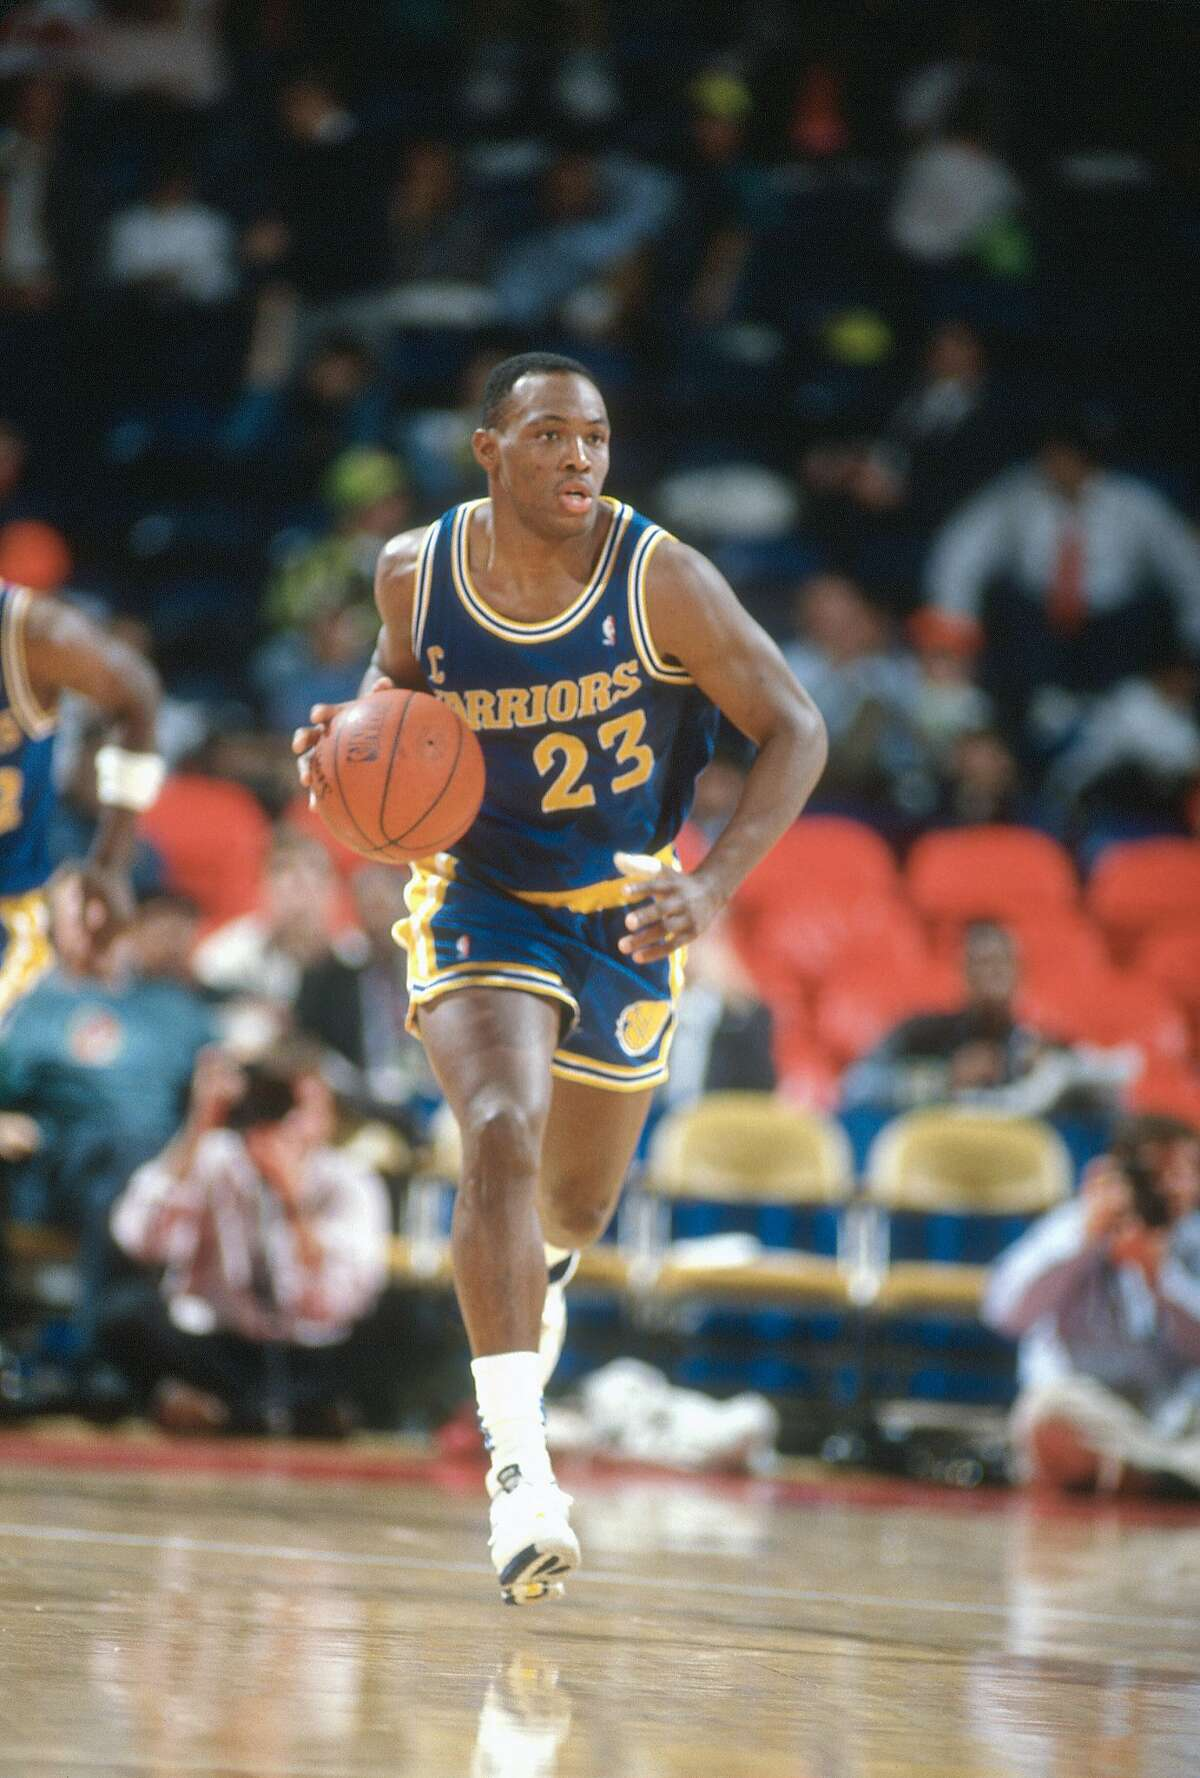 LANDOVER, MD - CIRCA 1990: Mitch Richmond #23 of the Golden State Warriors dribbles the ball up court against the Washington Bullets during an NBA basketball game circa 1990 at the Capital Centre in Landover, Maryland. Richmond played for the Warriors fr